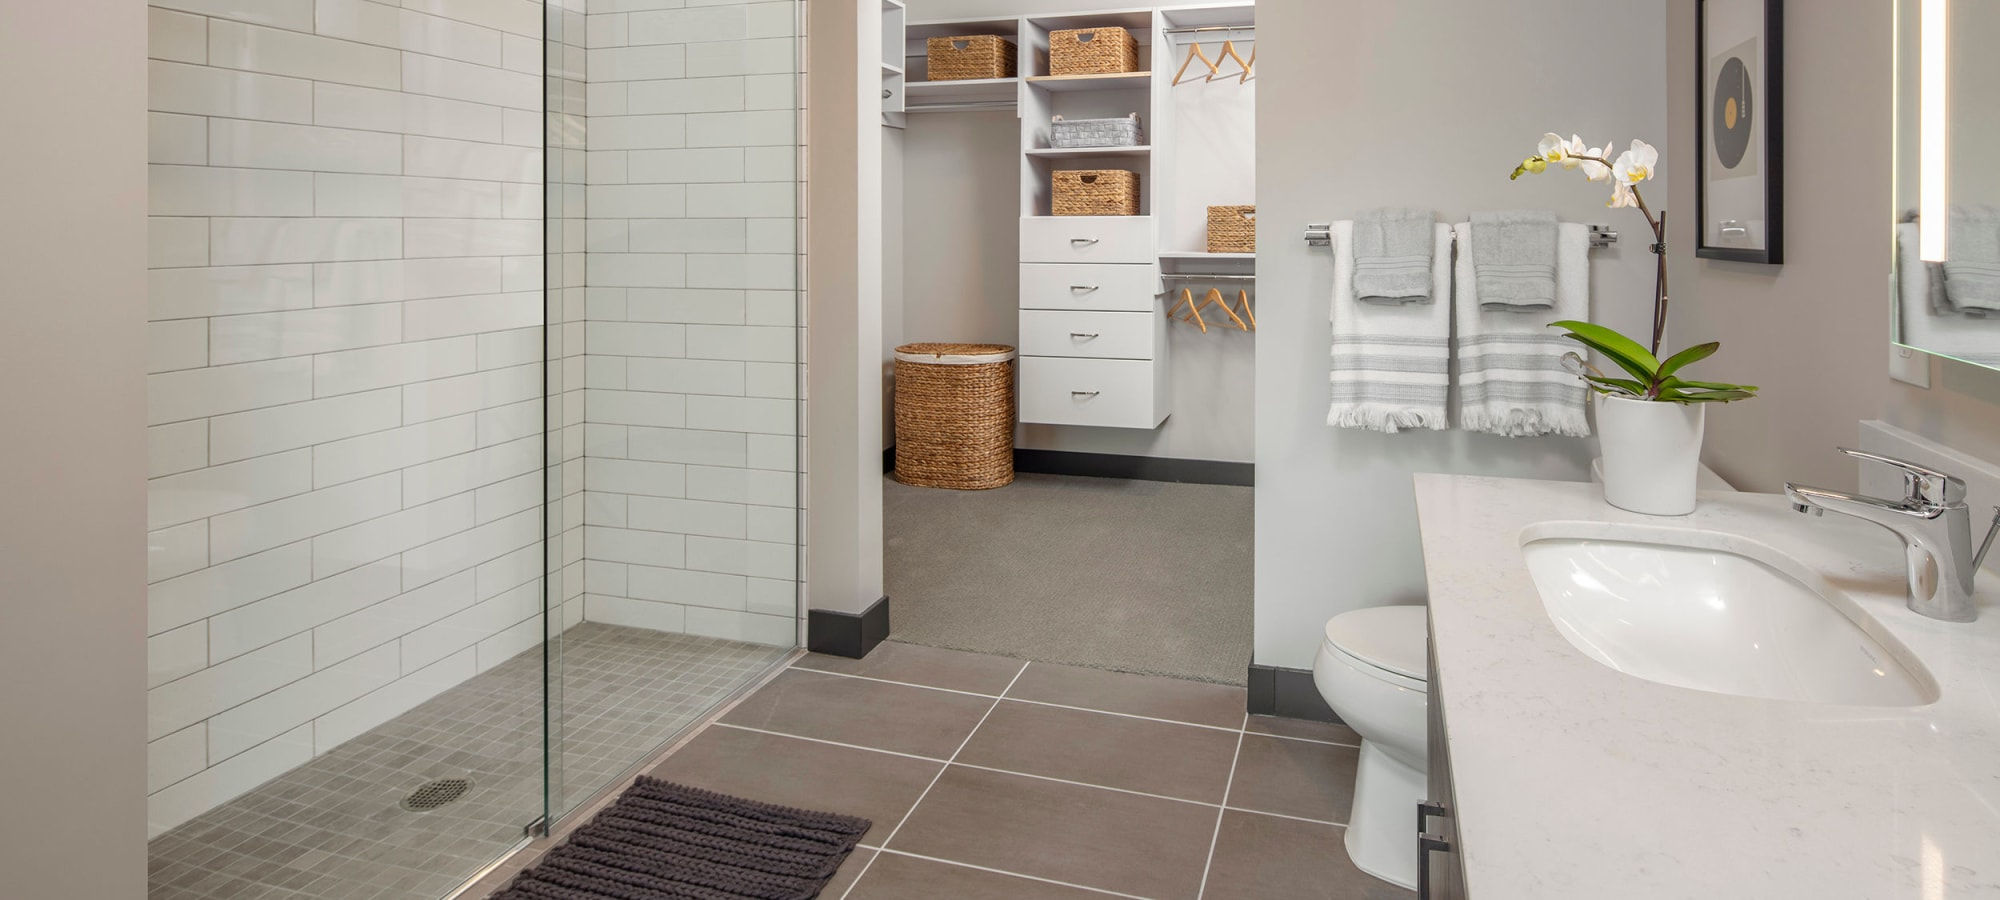 large and spacious bathroom at The Local Apartments in Tempe, Arizona